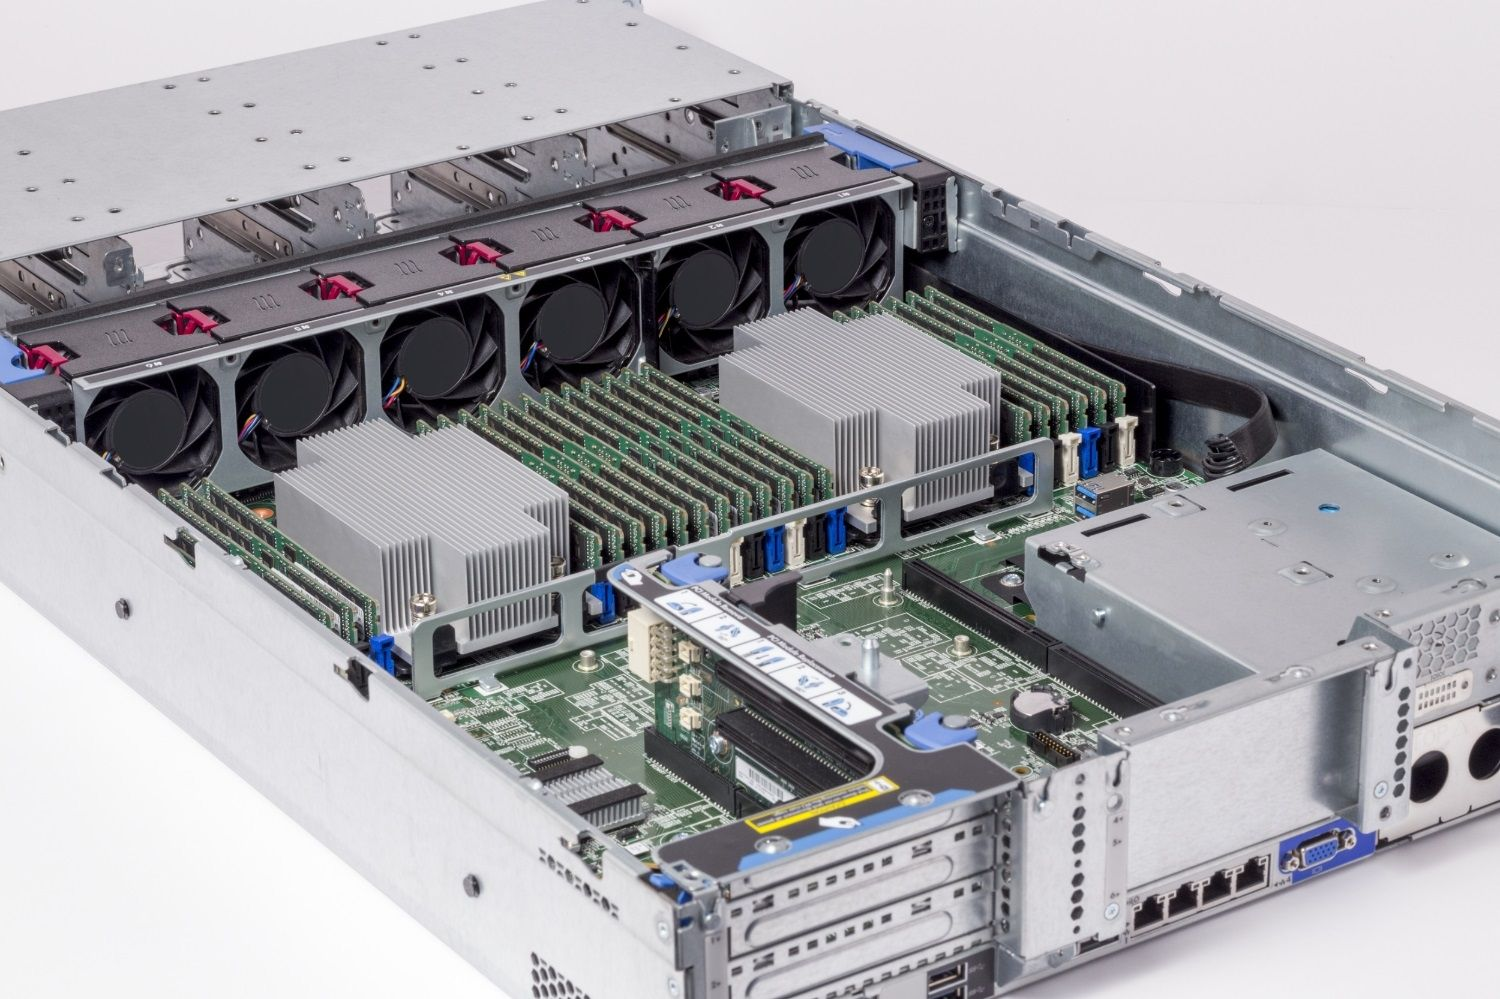 Crucial RAM memory modules installed in a server